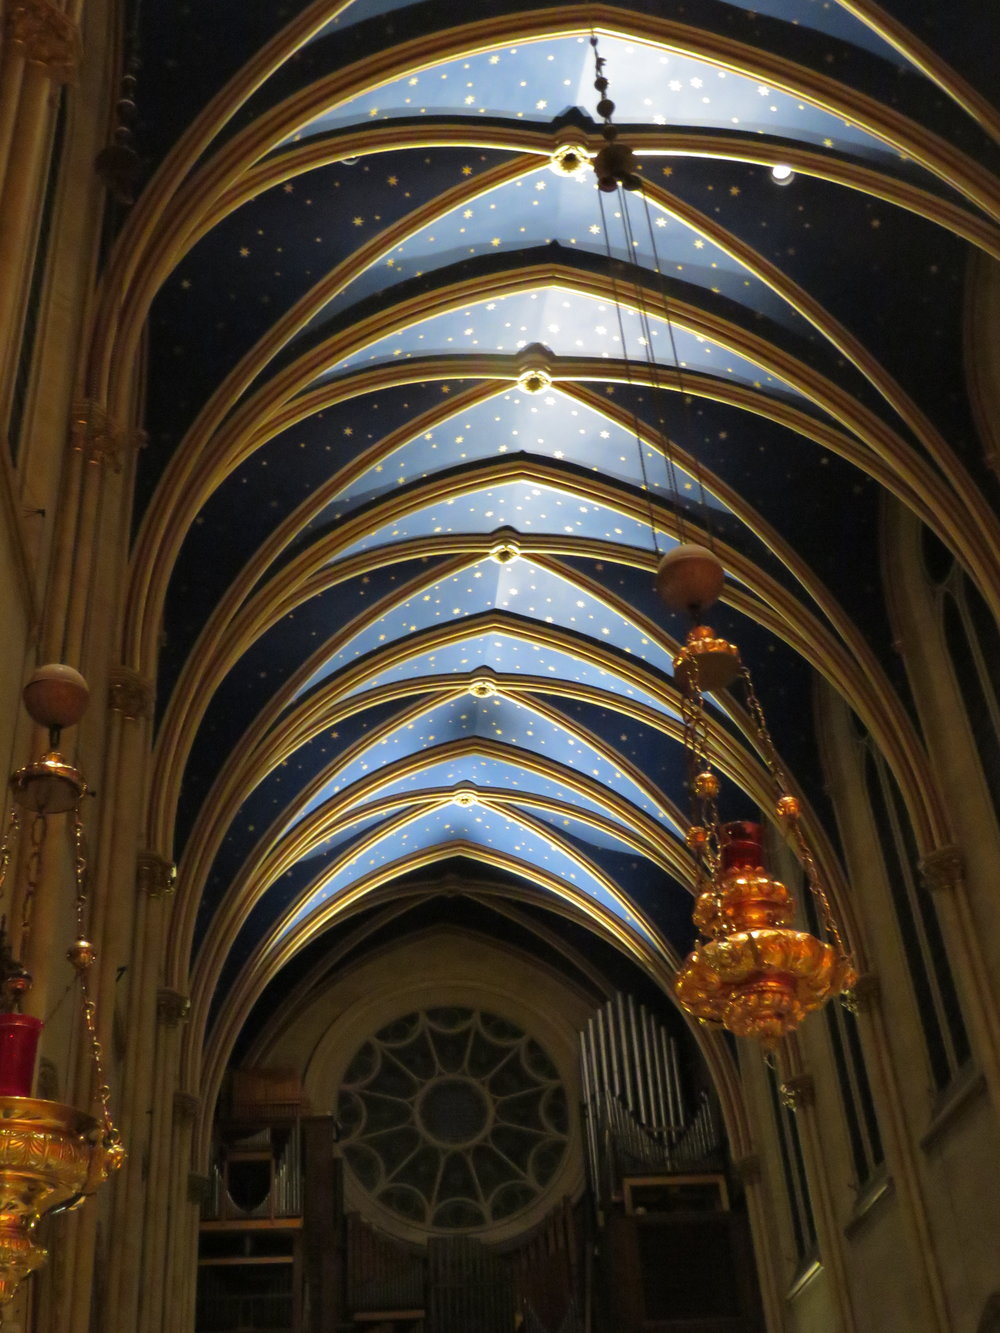 New lighting for the nave and the chancel debuted last Sunday. This Sunday will be even better now that the settings have been adjusted.  Photo by Br. Damien Joseph, SSF